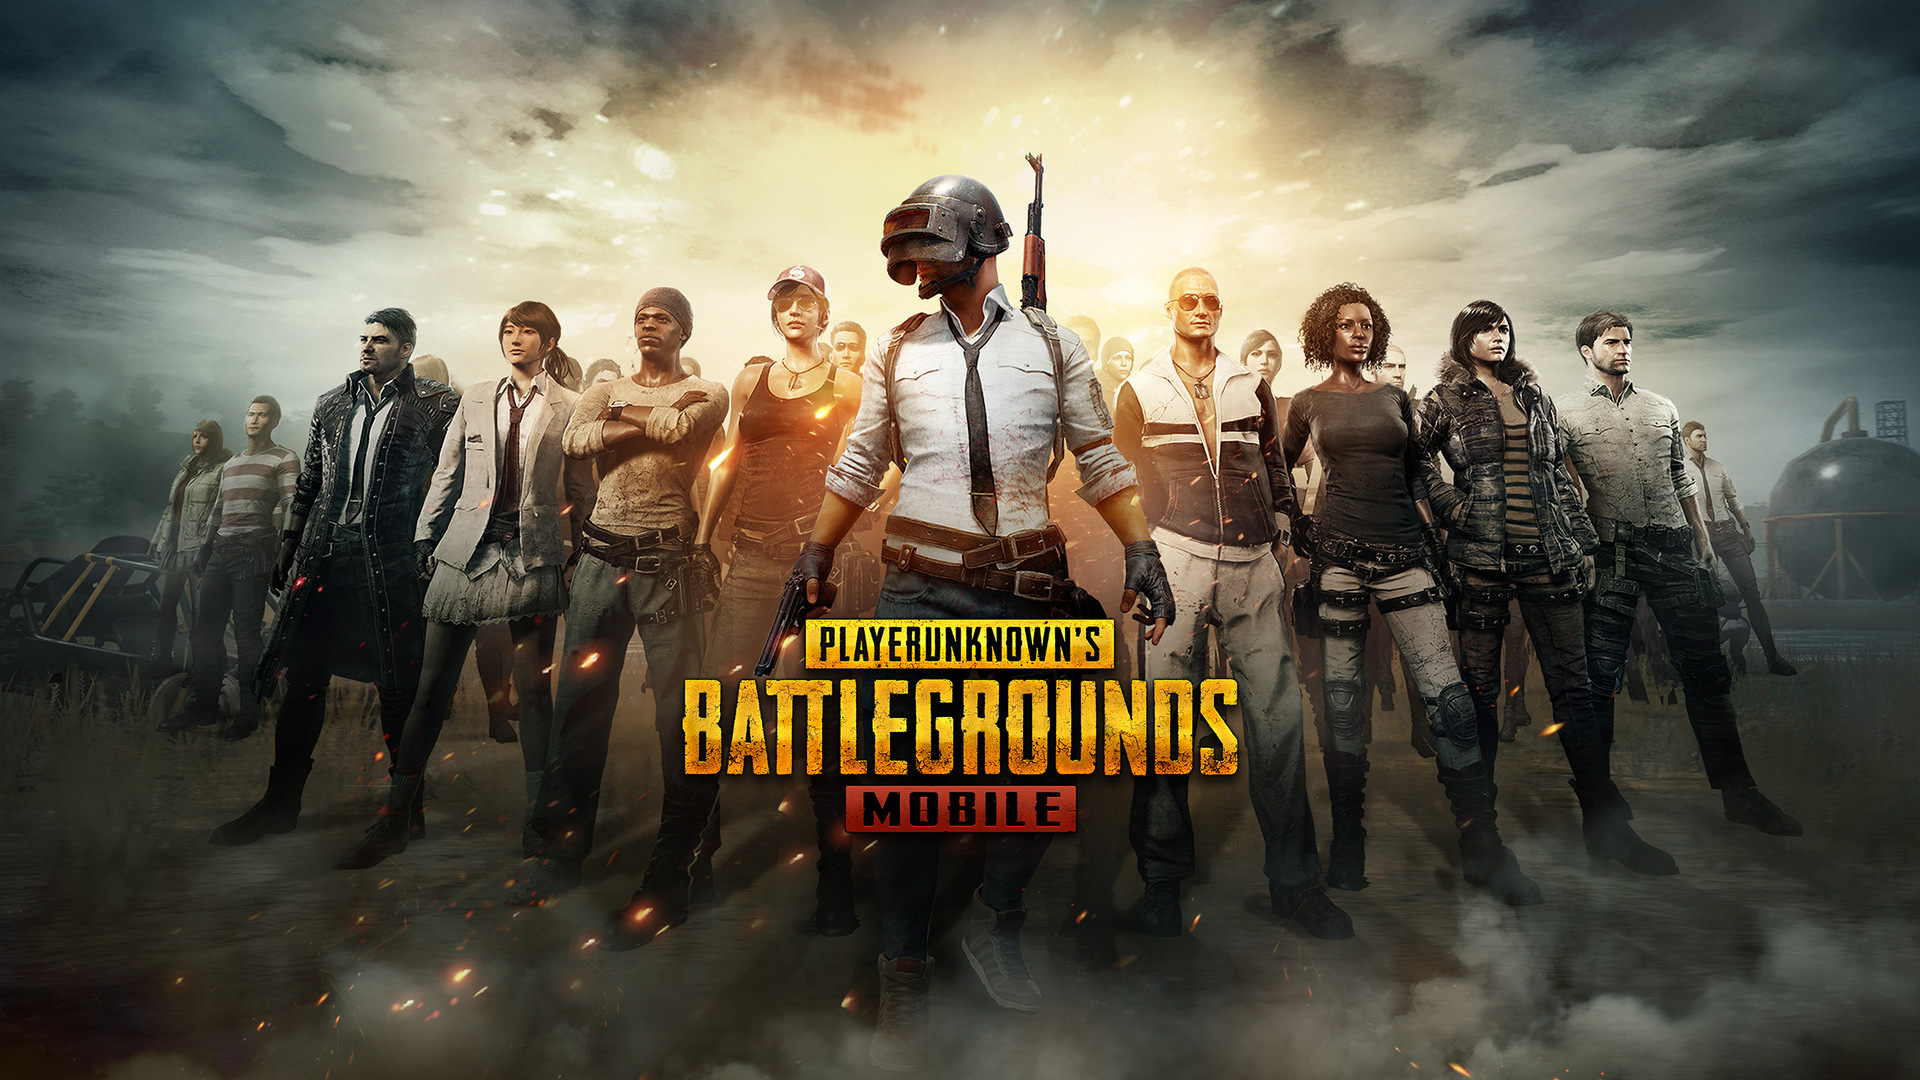 1920x1080 Pubg Artwork 4k Laptop Full Hd 1080p Hd 4k: 1920x1080 Pubg Mobile Laptop Full HD 1080P HD 4k